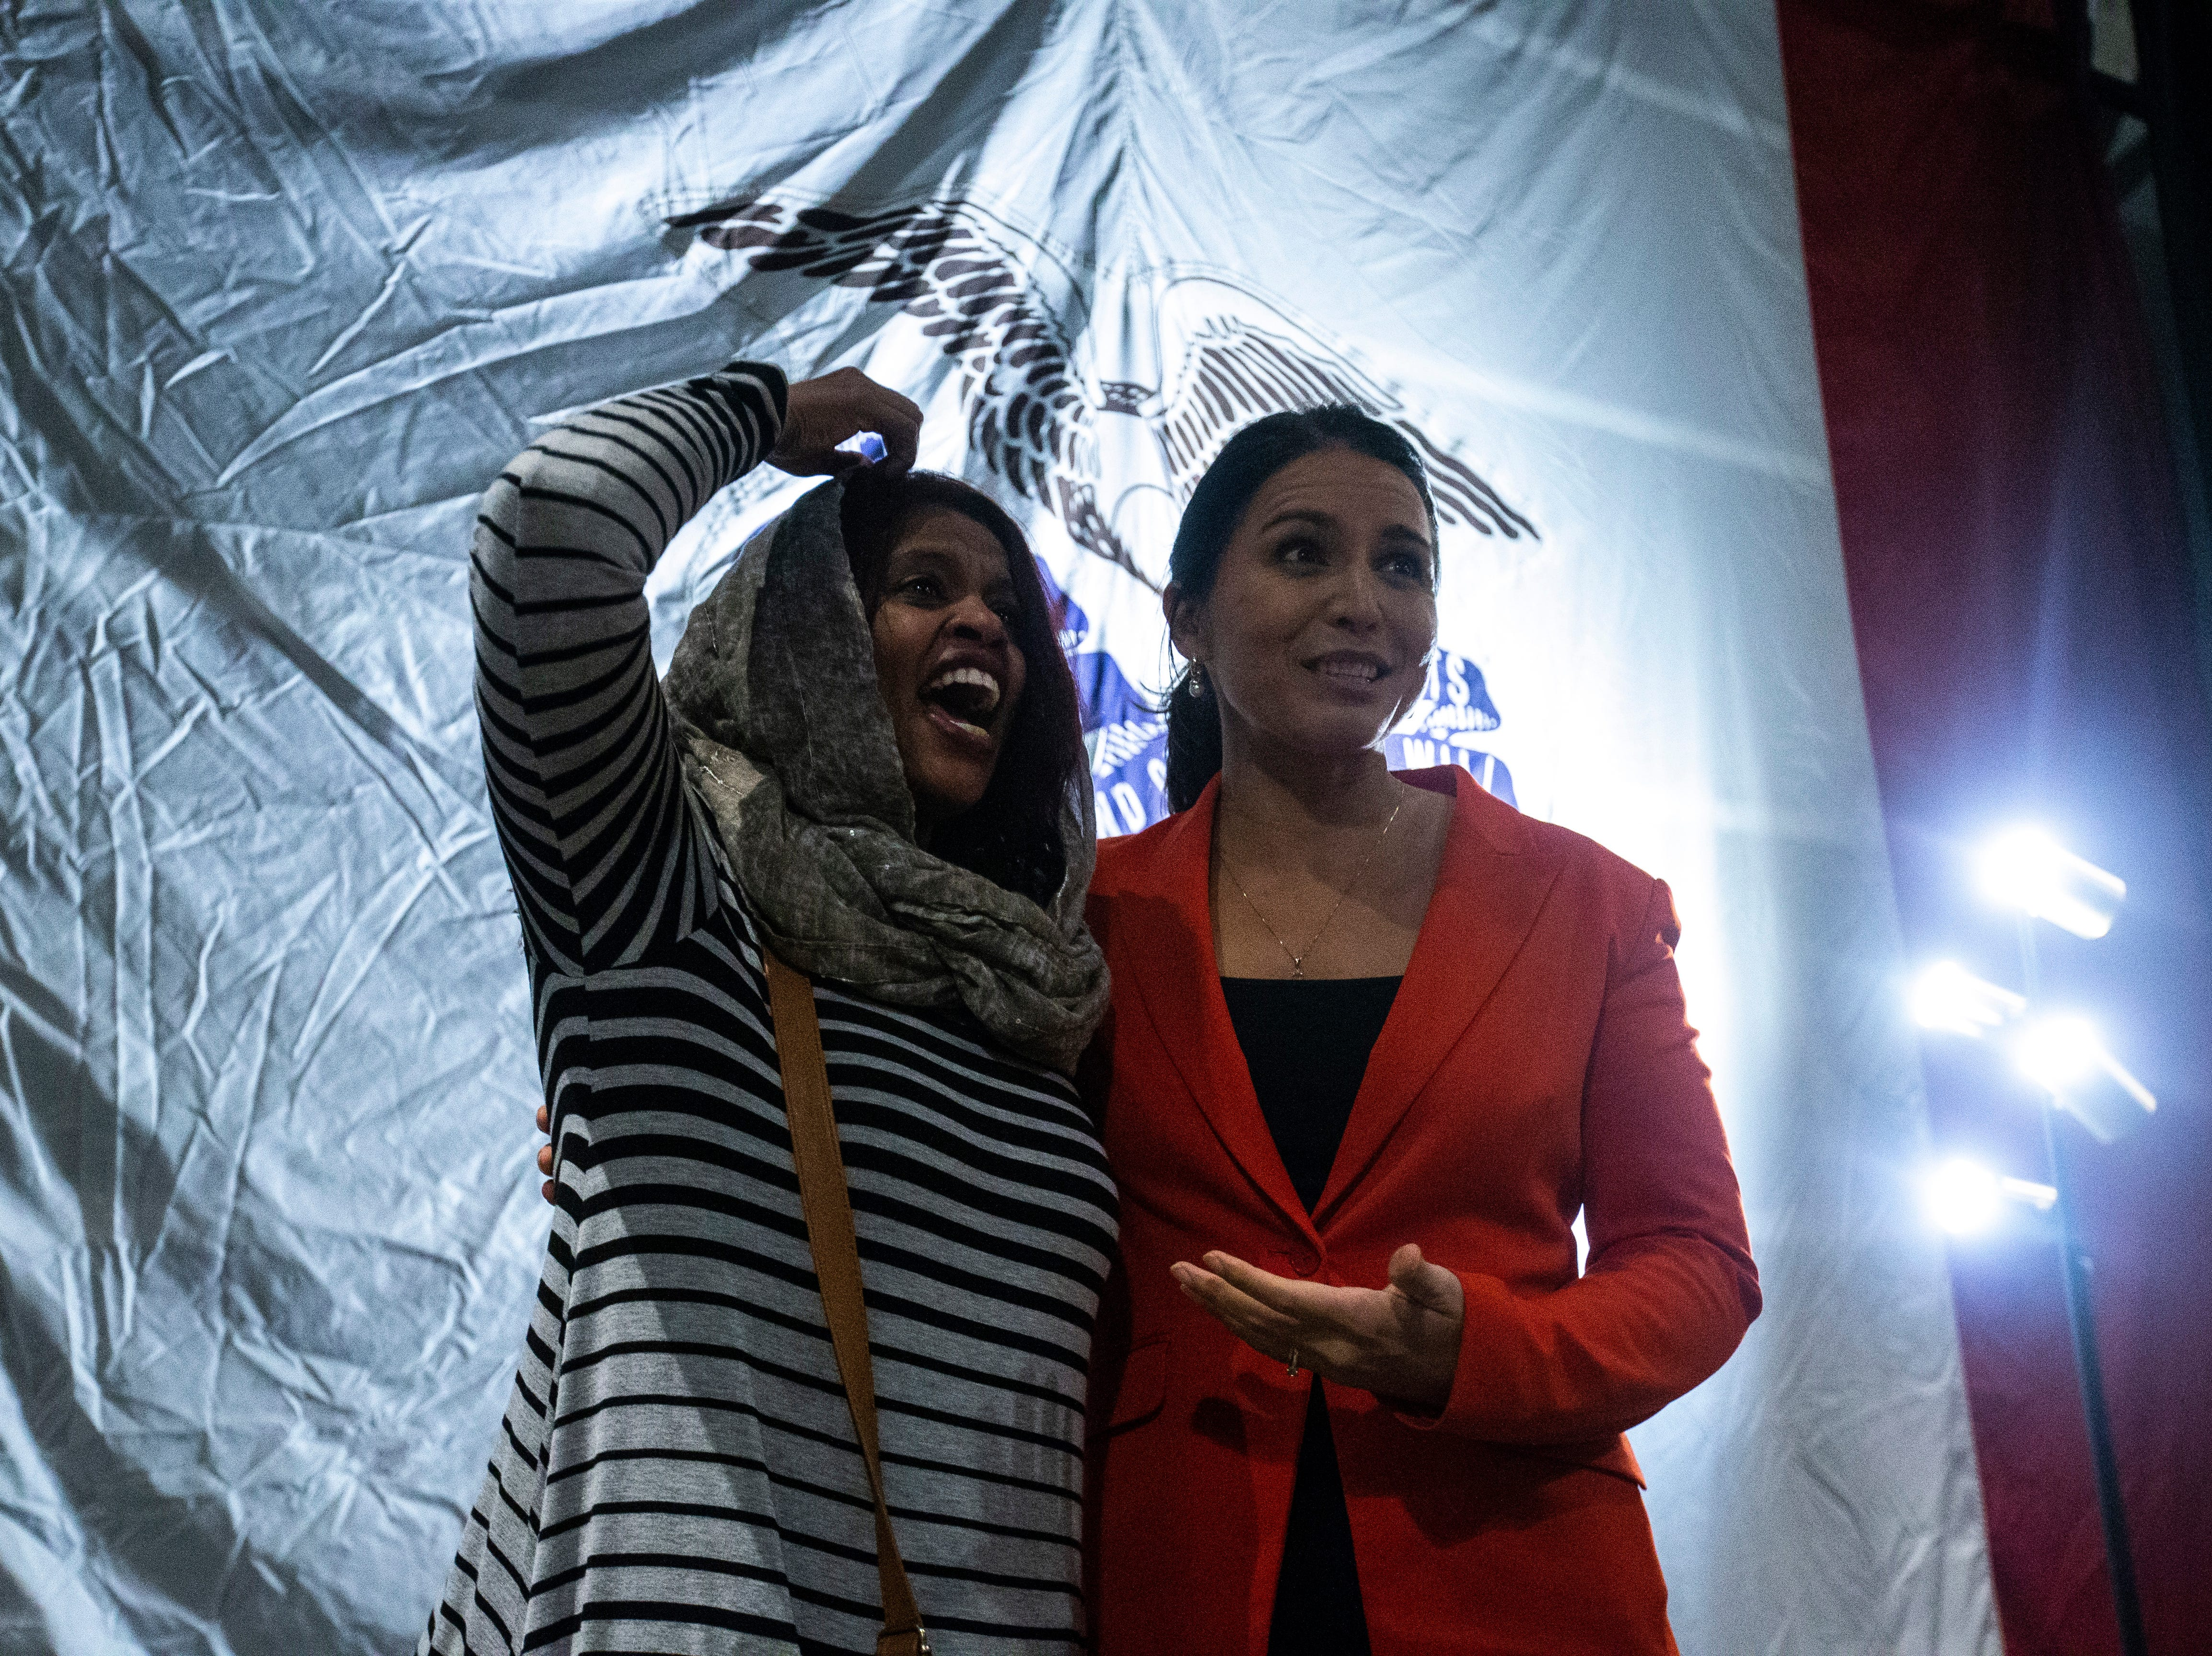 U.S. Rep. Tulsi Gabbard, D-Hawaii, takes a photo with Iowa City Councilor Mazahir Salih during an event on Gabbard's first trip to Iowa since declaring her intent to run for president on Monday, Feb. 11, 2019 at Big Grove Brewery in Iowa City.